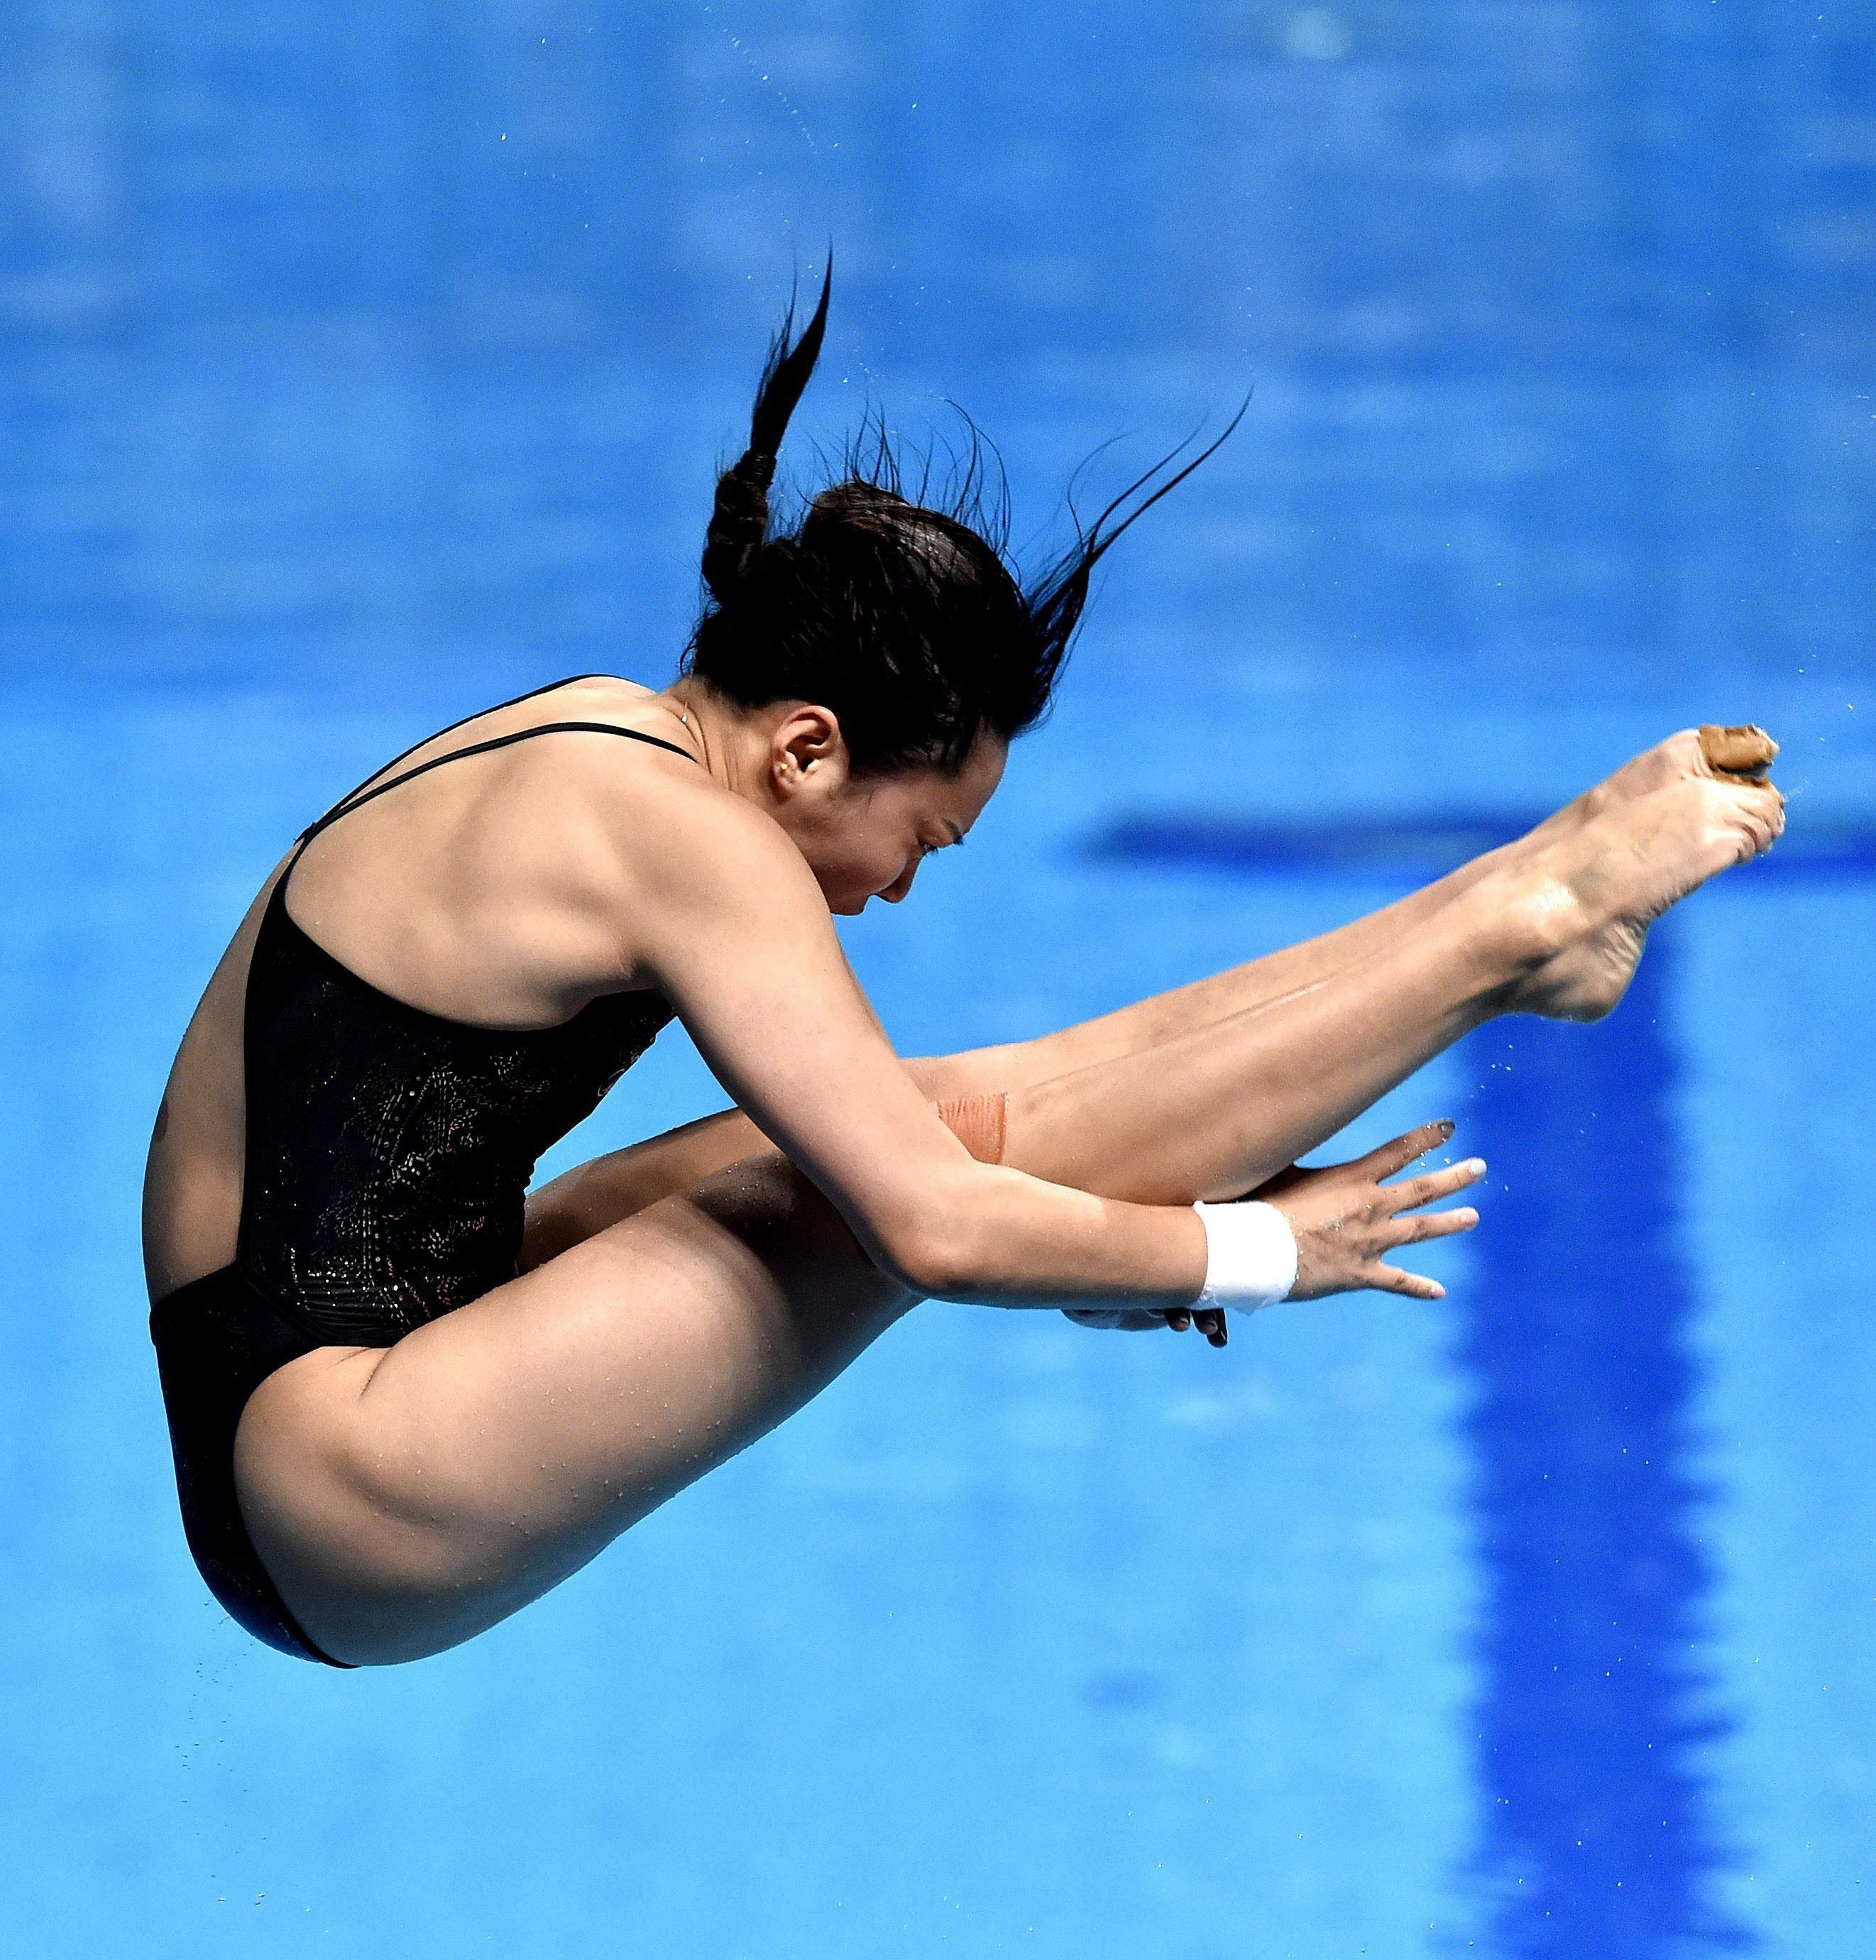 Han Wang of China competes in the women's diving 3m springboard semifinals of the 17th FINA Swimming World Championships in Duna Arena in Budapest, Hungary, Thursday, July 20, 2017. (Zoltan Mathe/MTI via AP)